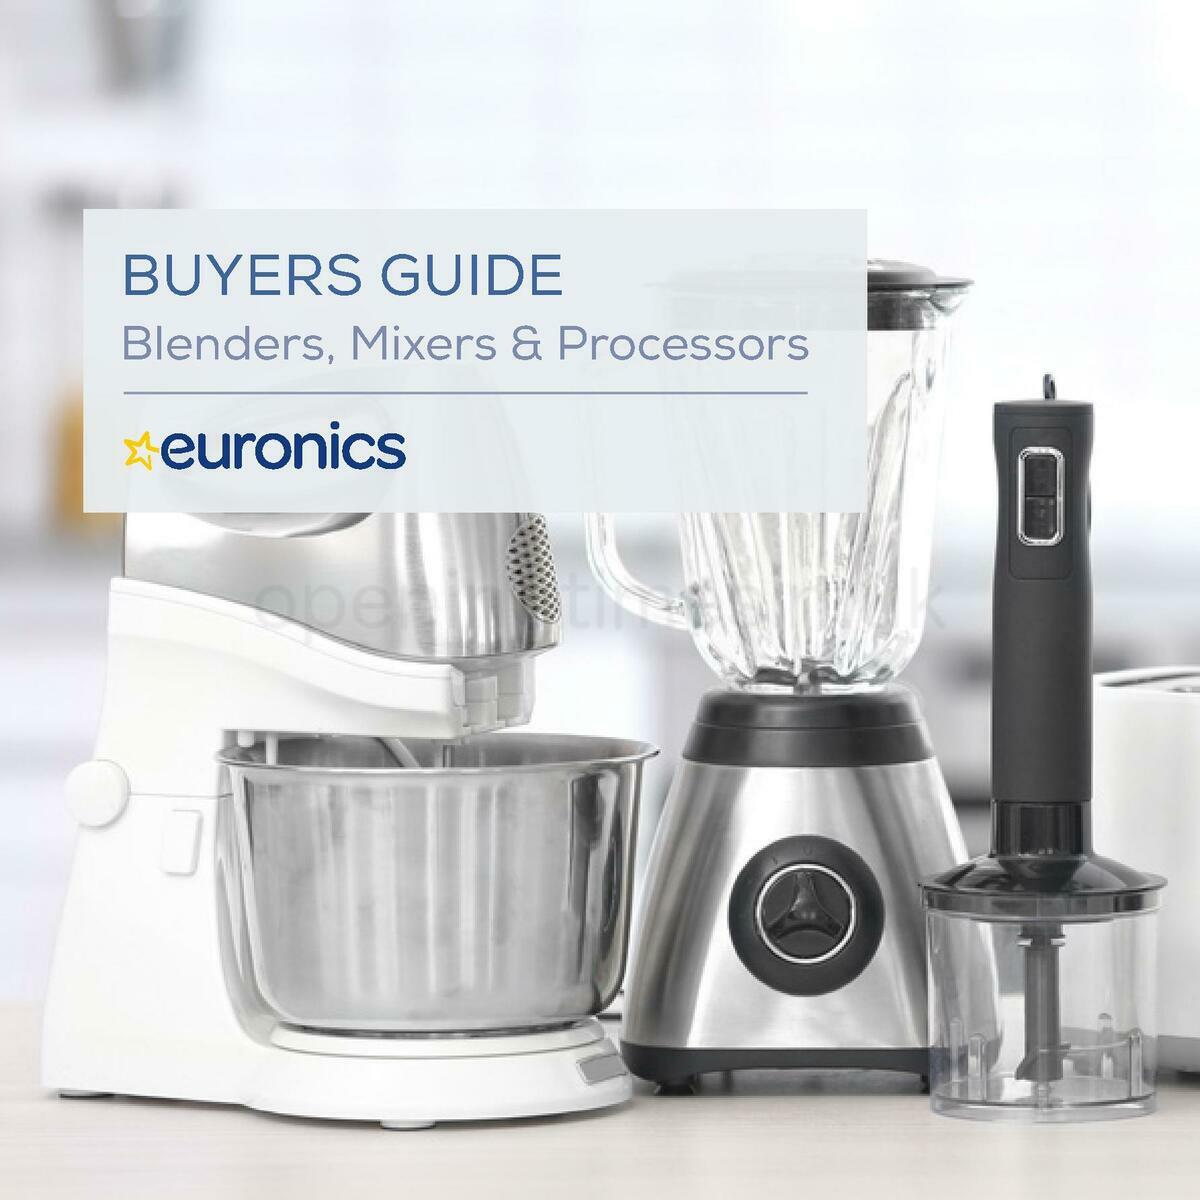 Euronics Blenders, Mixers & Processors Buyers Guide Offers from January 1